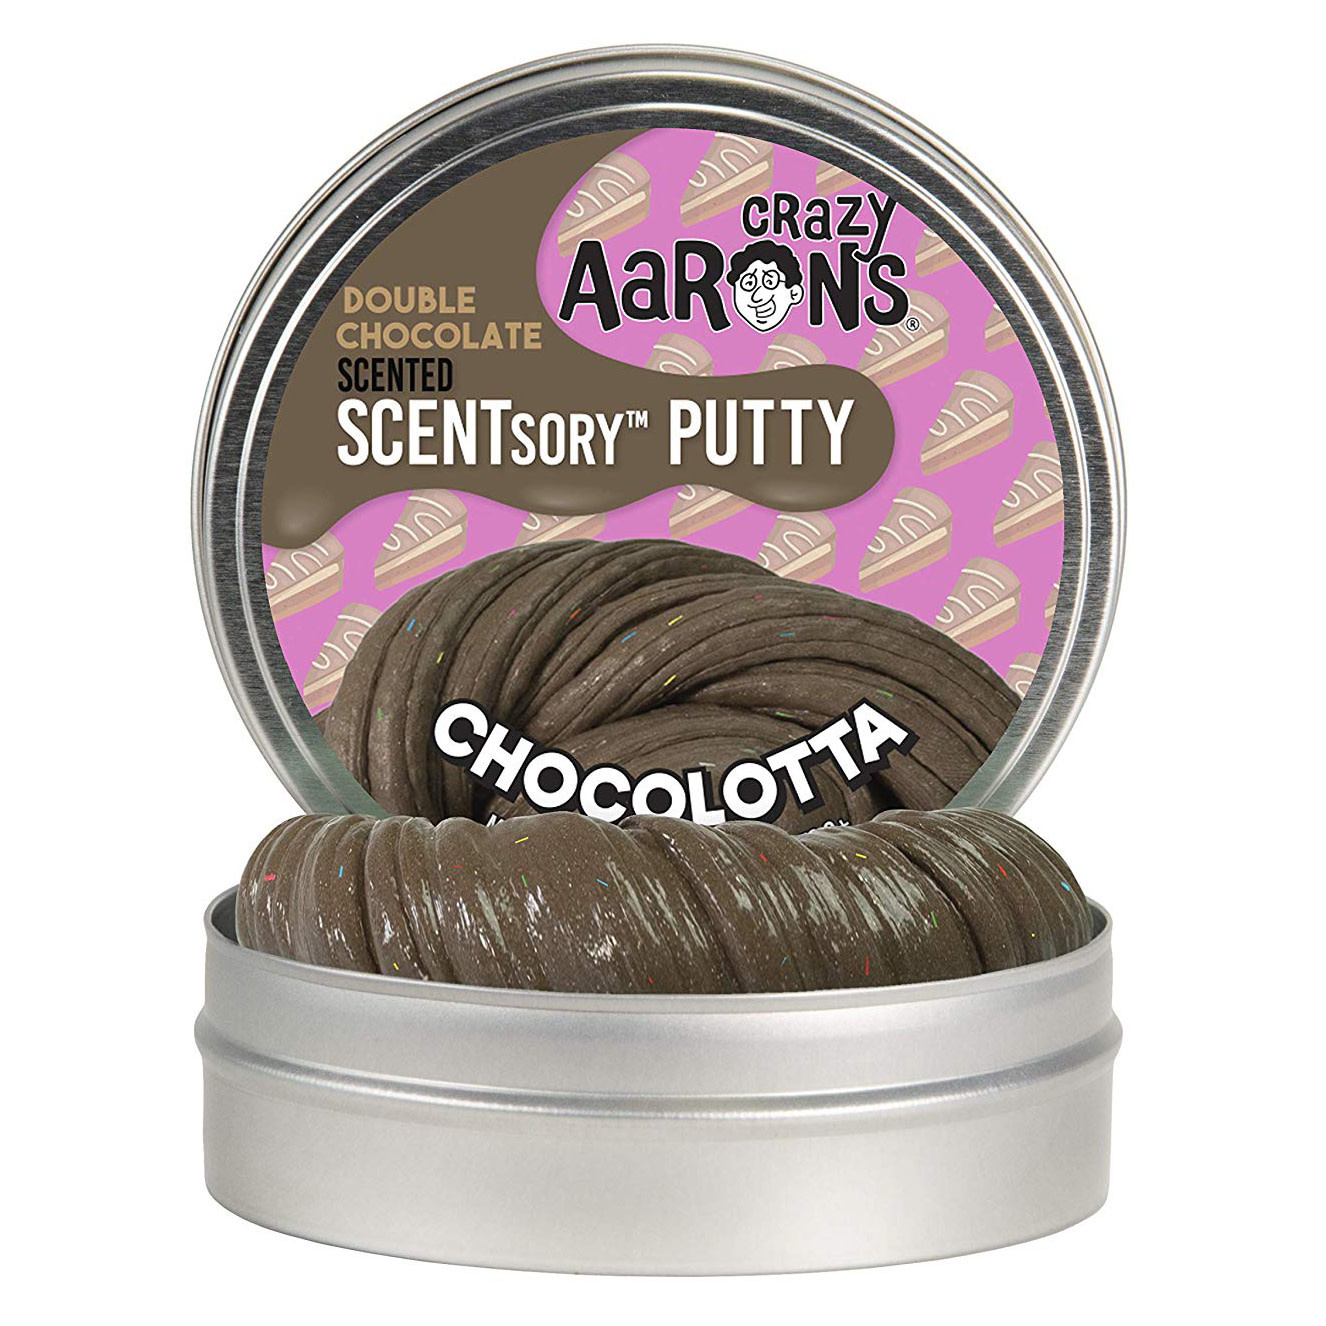 Crazy Aaron's Thinking Putty SCENTSory Chocolotta 2.75""